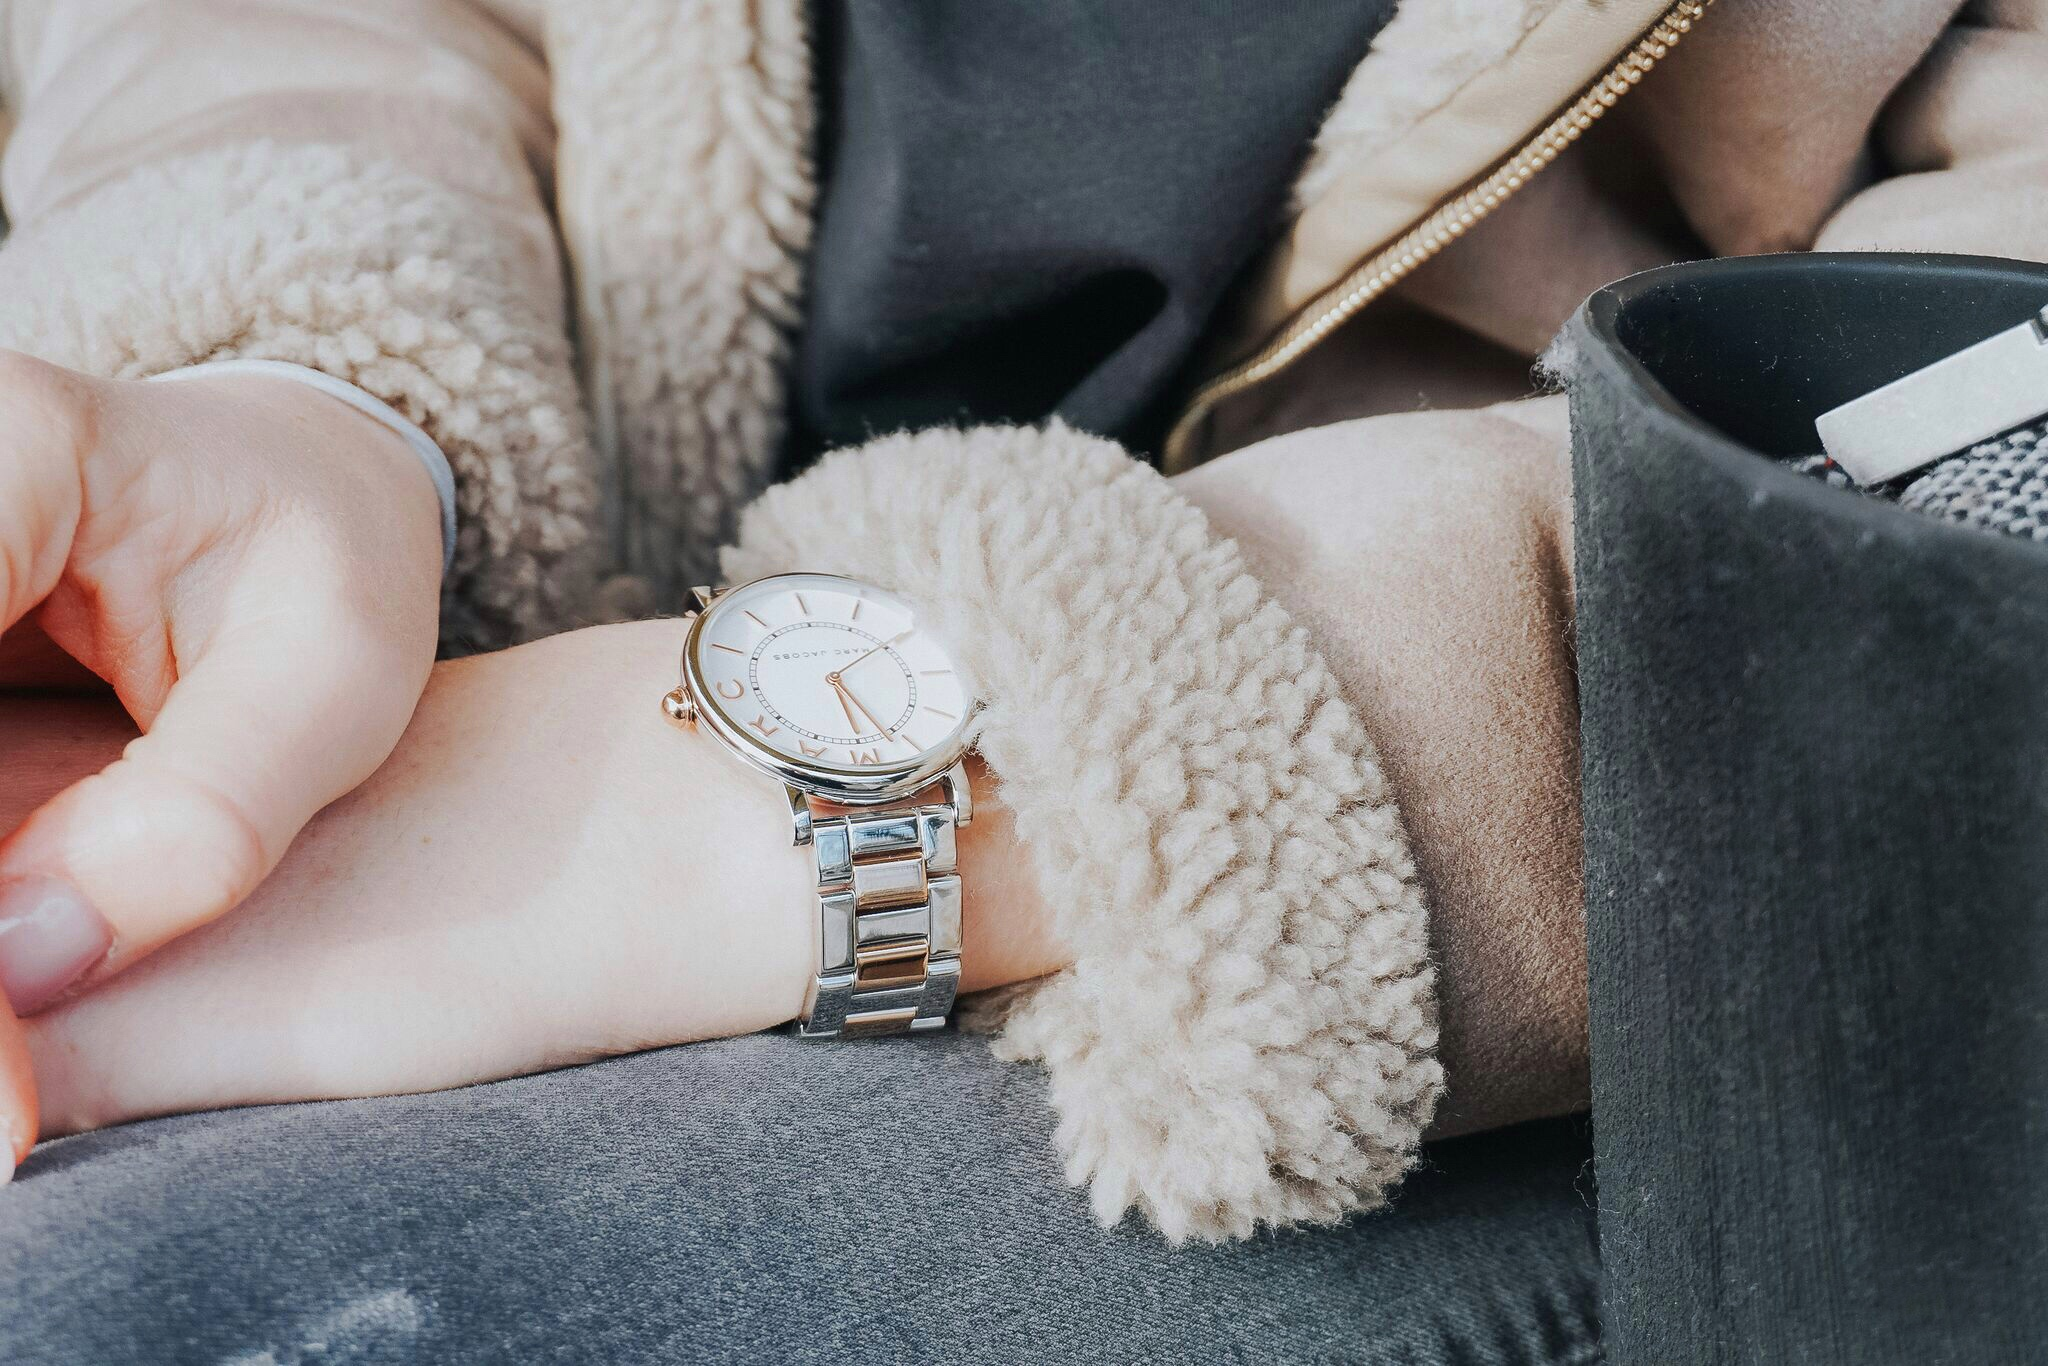 #Fashion // It's all about the Accessoires – Shoes, Bags, Watches